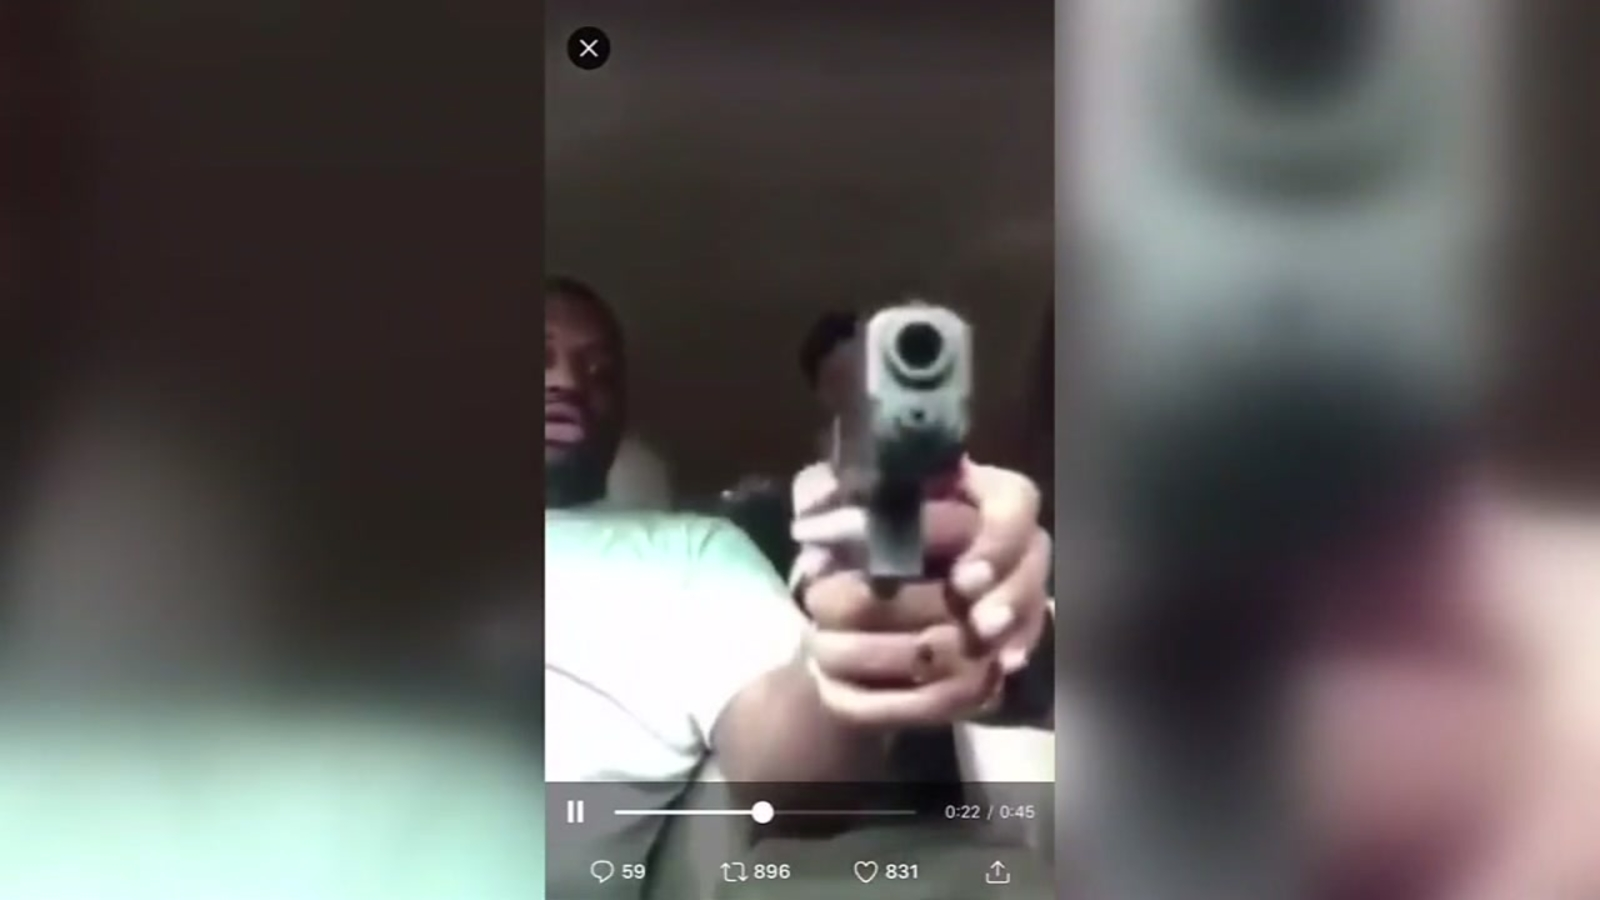 Family of man shot on Facebook Live says he opened his eyes and